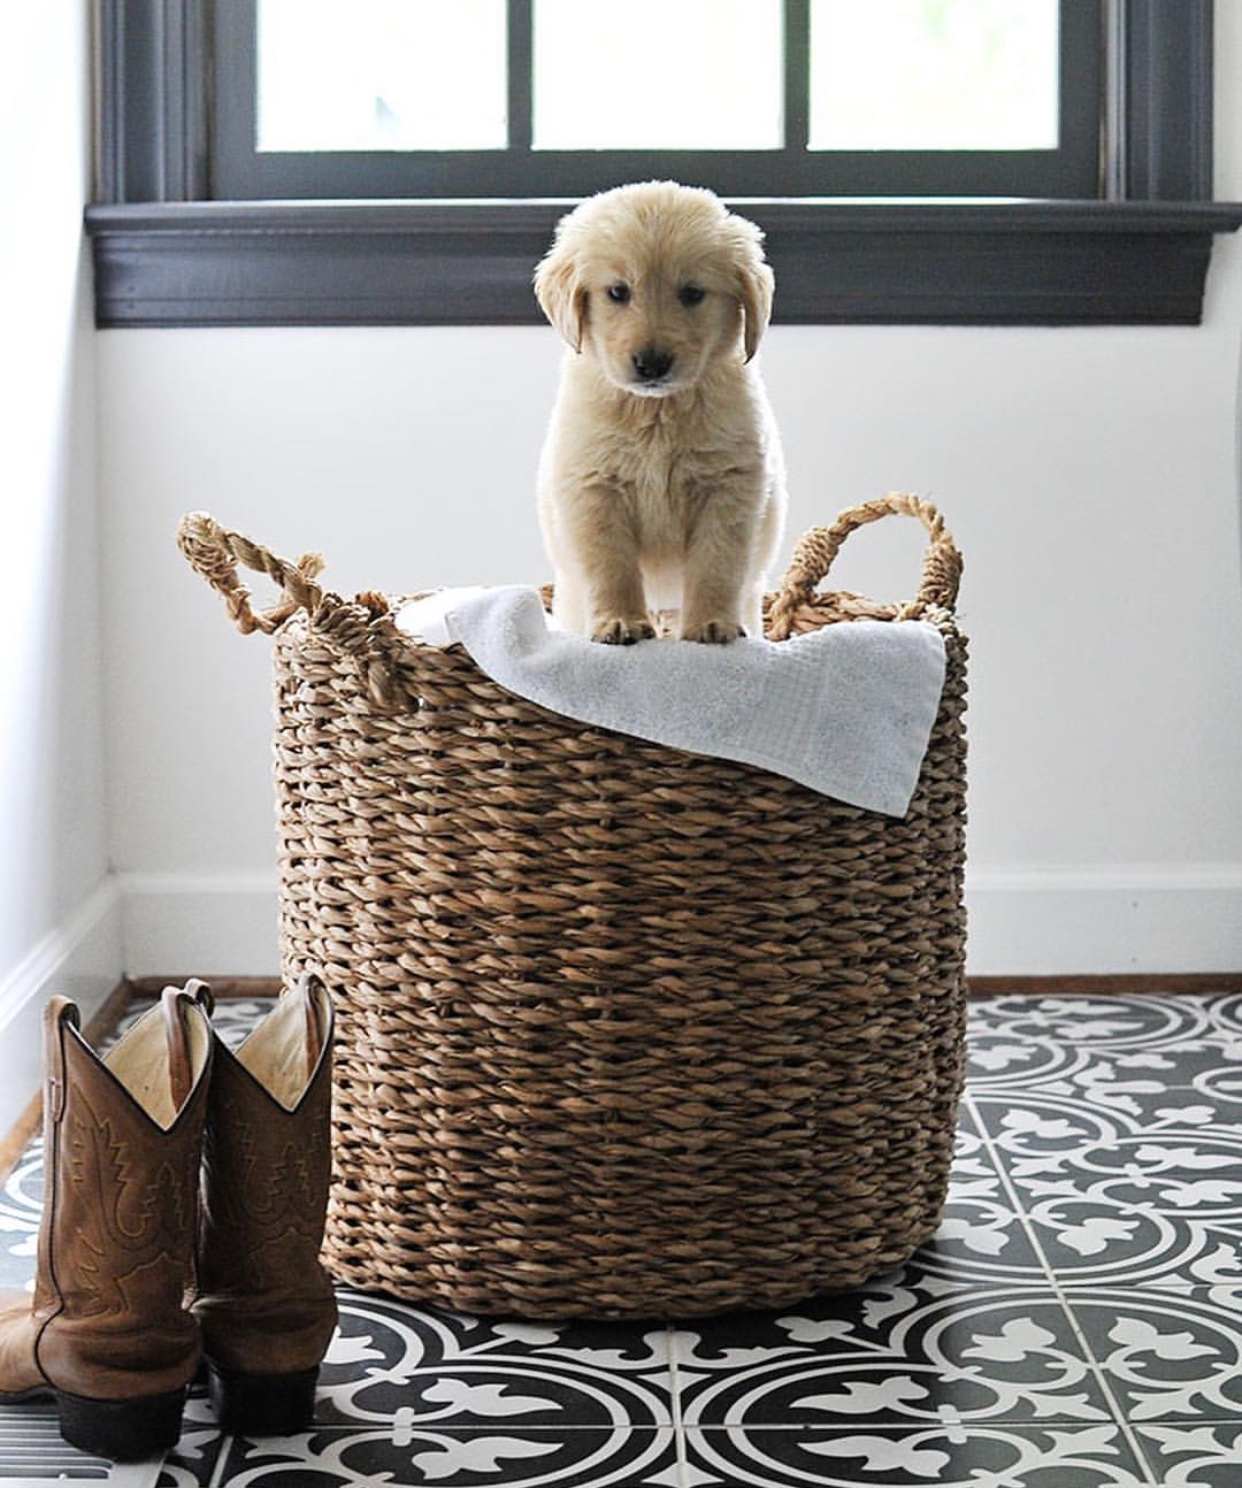 Puppy dog in a basket! Love the tile and dark millwork